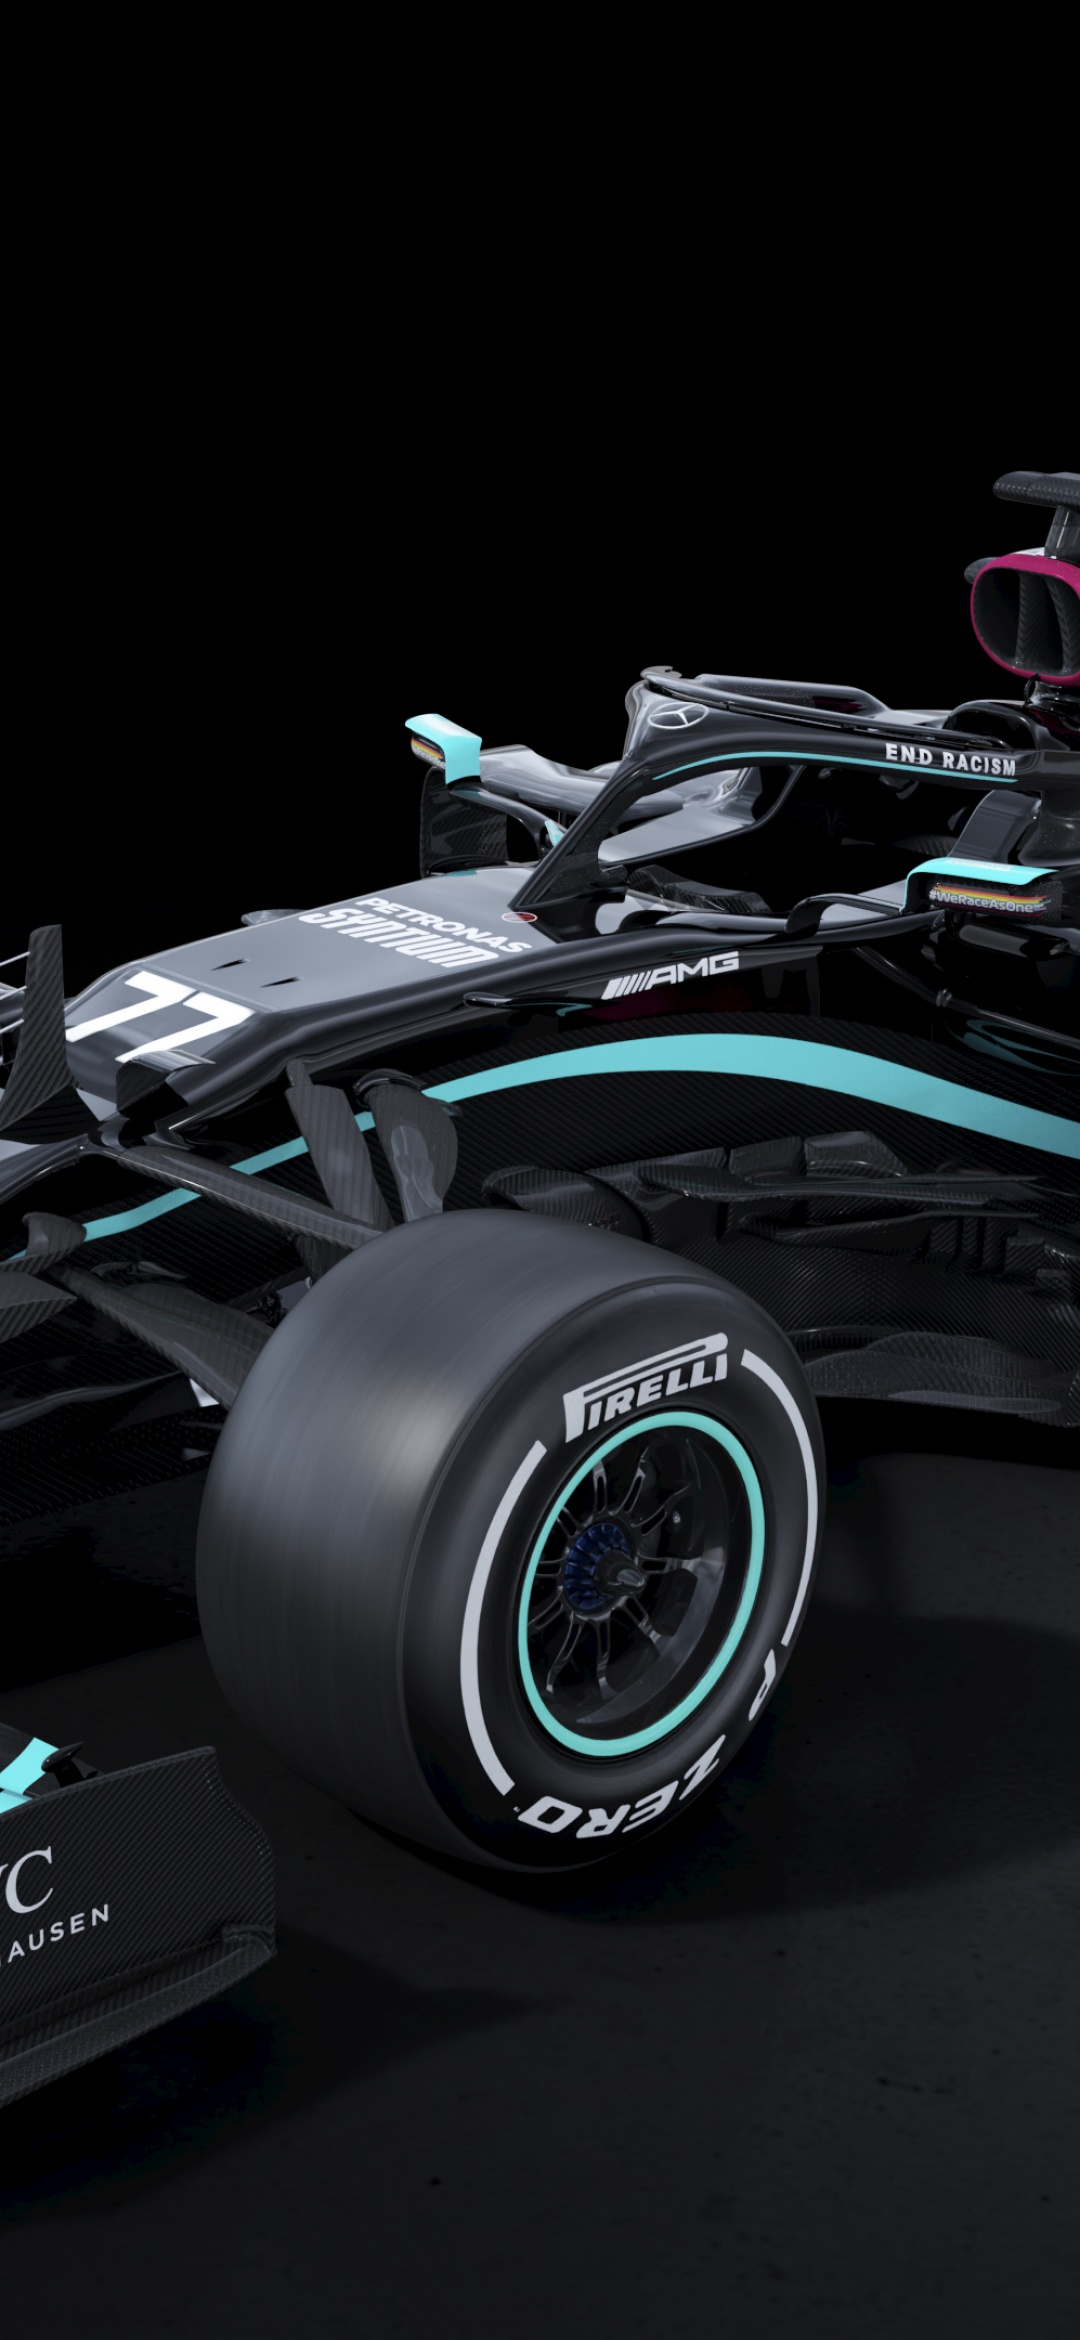 Mercedes Amg F1 W11 Eq Performance 4k Wallpaper 2020 F1 Cars Electric Race Cars Black Dark 1632